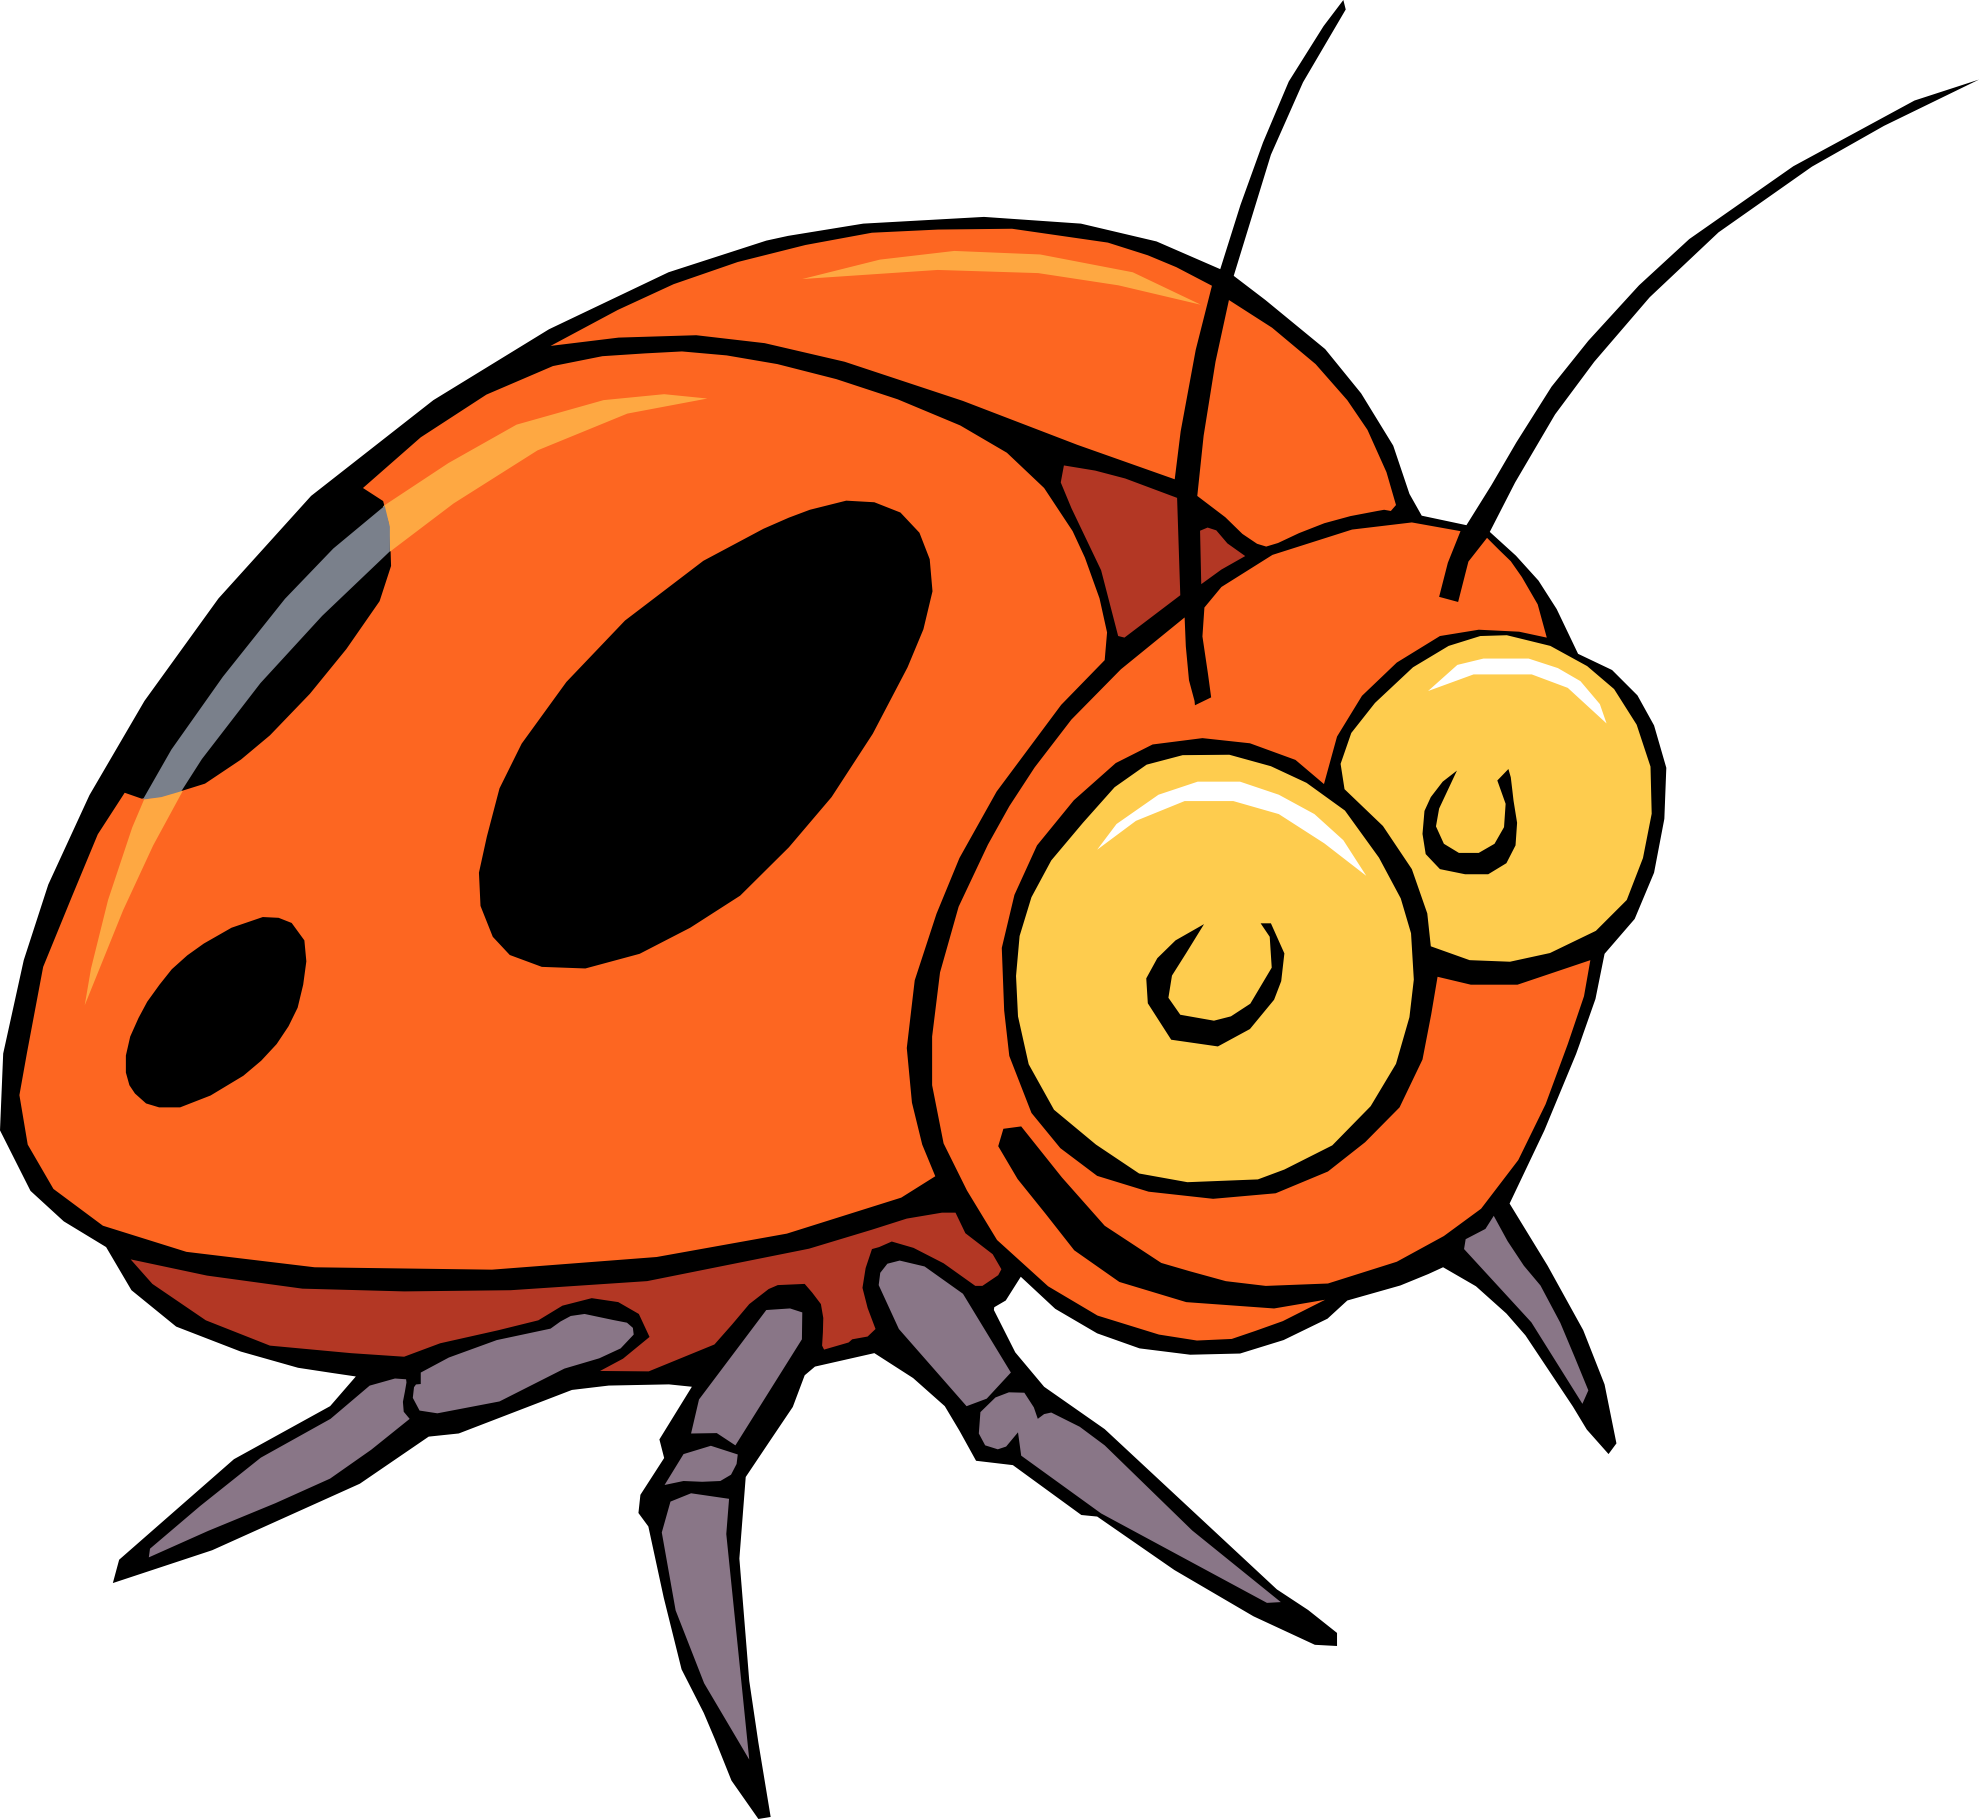 Insect Clipart Cliparts Co - Insects Clipart